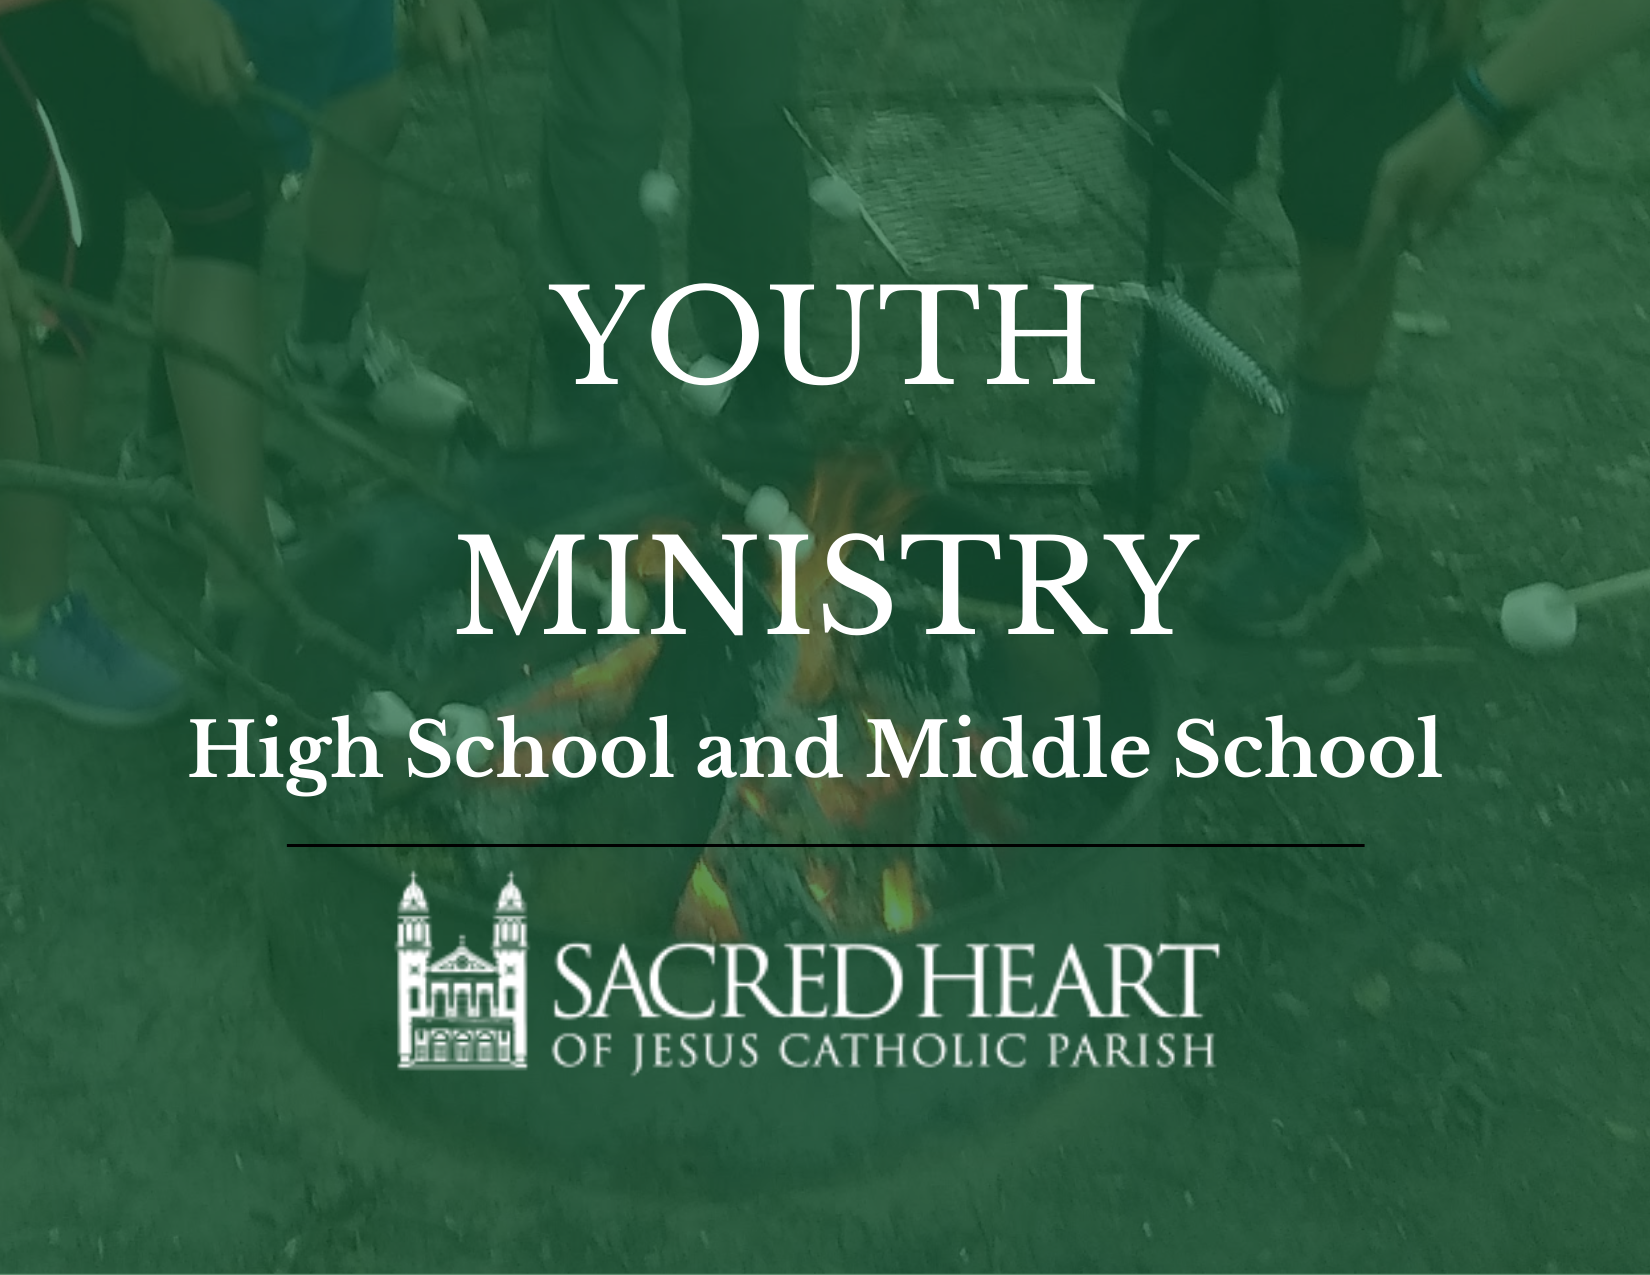 Youth Ministry 2021-2022 Events